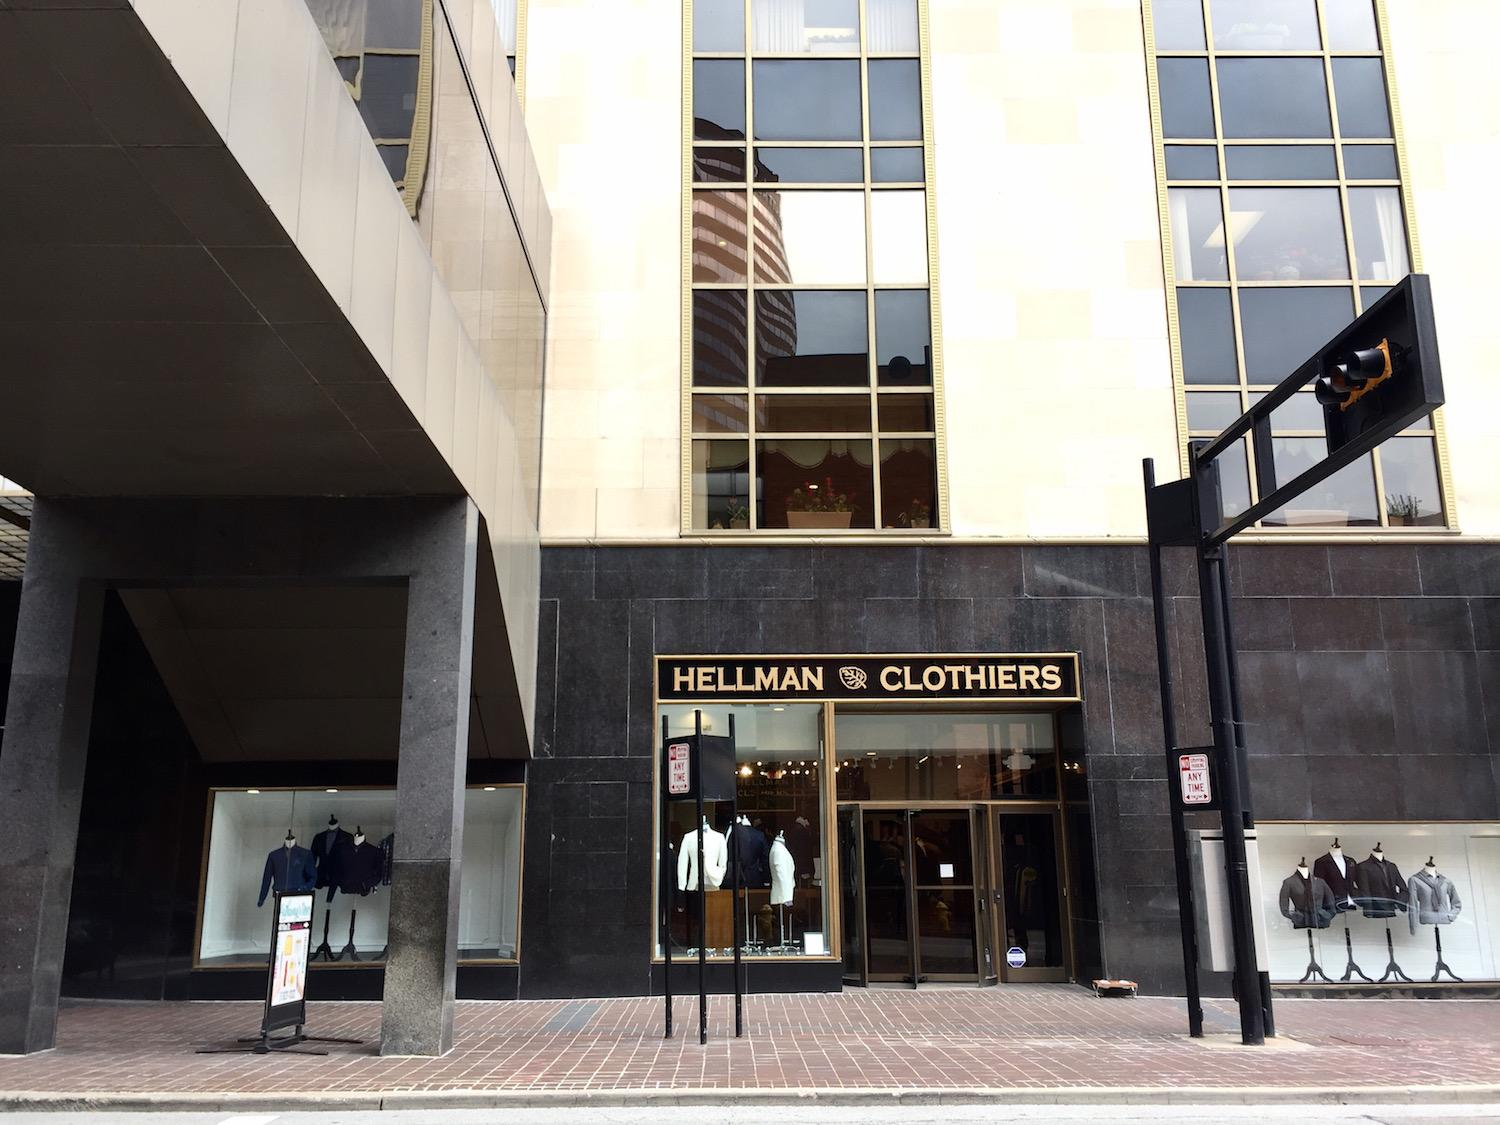 Hellman Clothiers is a new menswear apparel retailer located in the Carew Tower. Owner Chuck Hellman also owns Blaine's Fine Men's Apparel in Montgomery. The Downtown Cincinnati store features designer clothing and upscale brands, starting at around $1000 for some blazers. ADDRESS: 441 Vine Street (45202) / Image: Leah Zipperstein, Cincinnati Refined // Published: 11.2.17